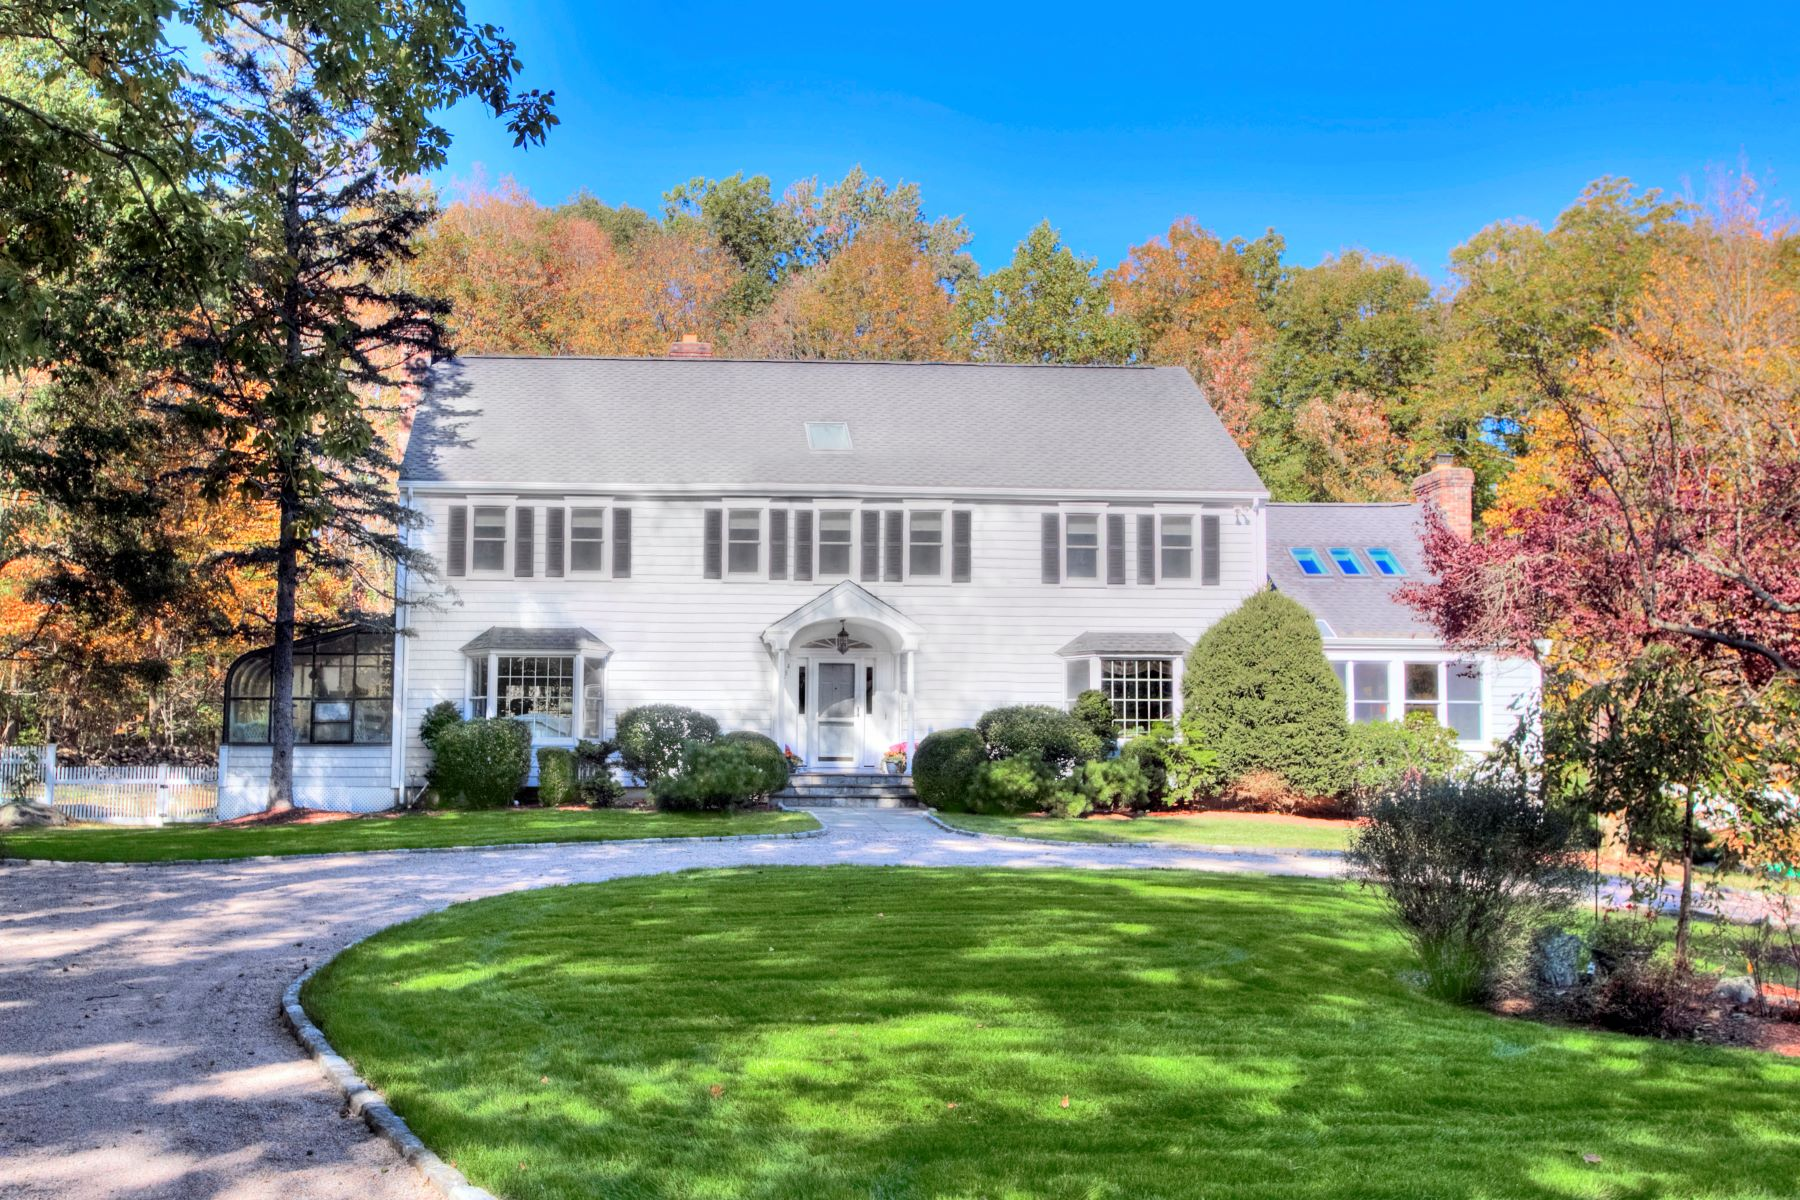 House for Sale at 784 Smith Ridge Road 784 Smith Ridge Road New Canaan, Connecticut 06840 United States